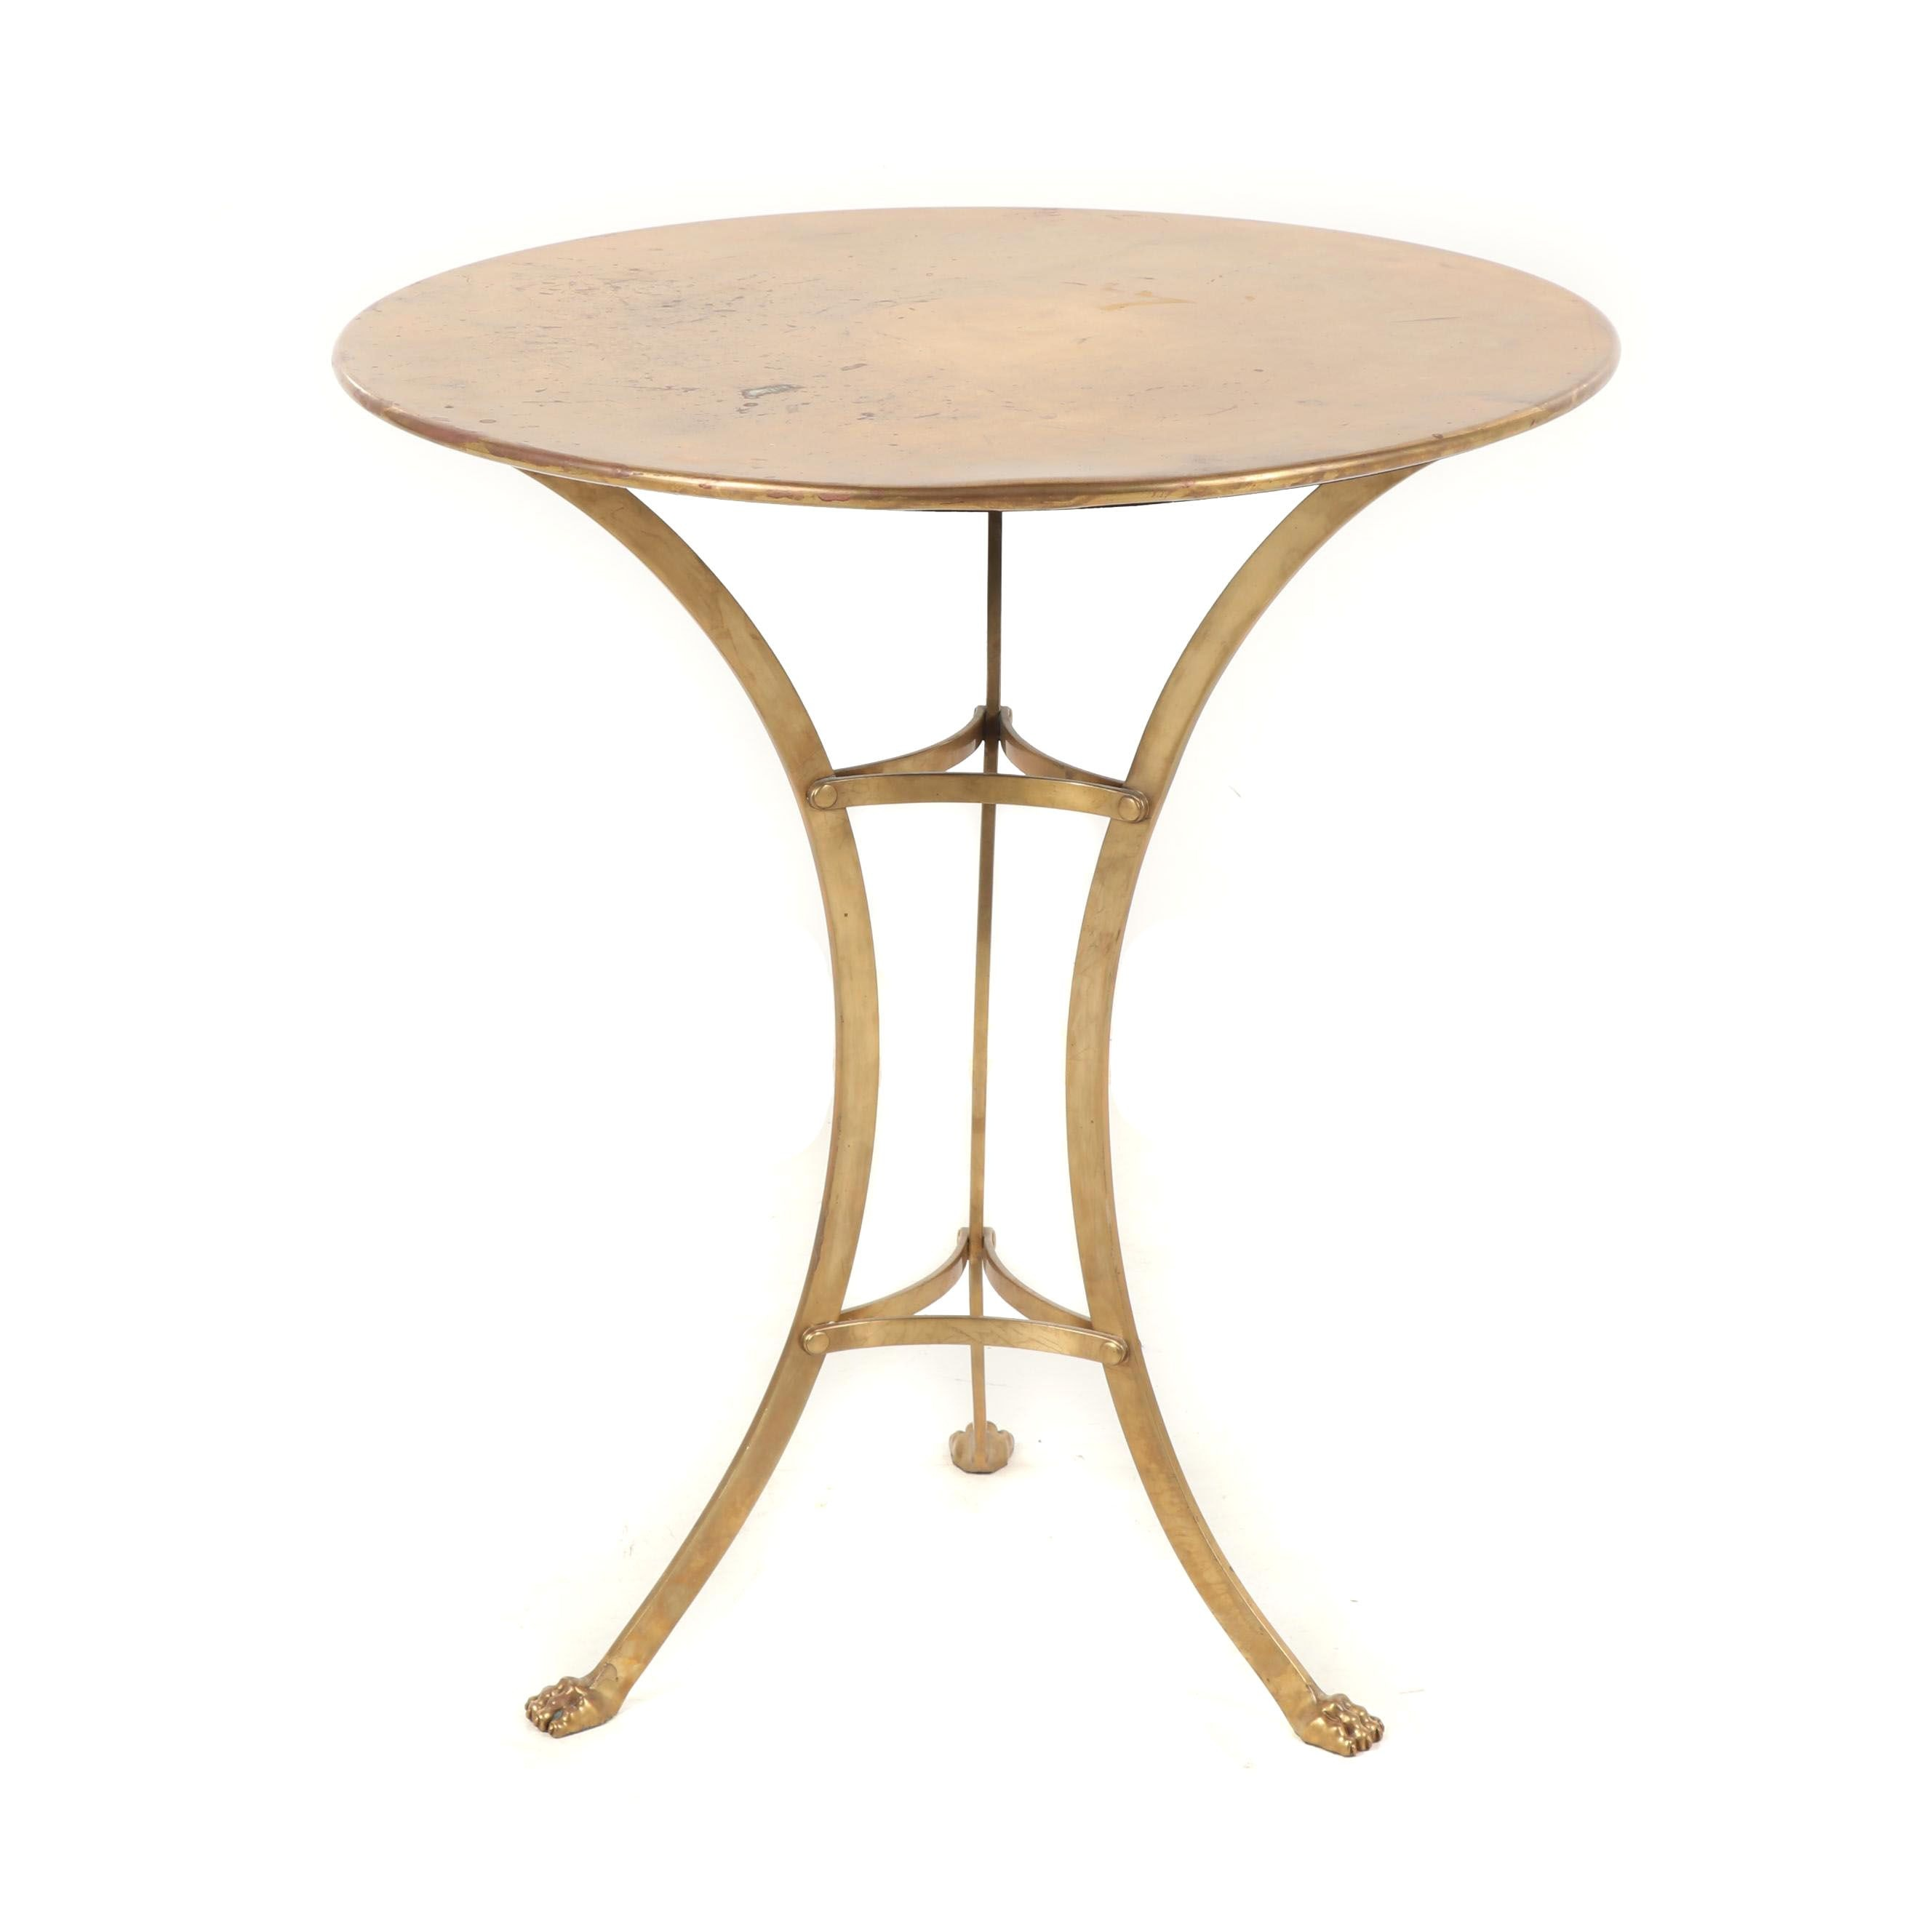 Brass Side Table with Claw Feet, Mid to Late 20th Century